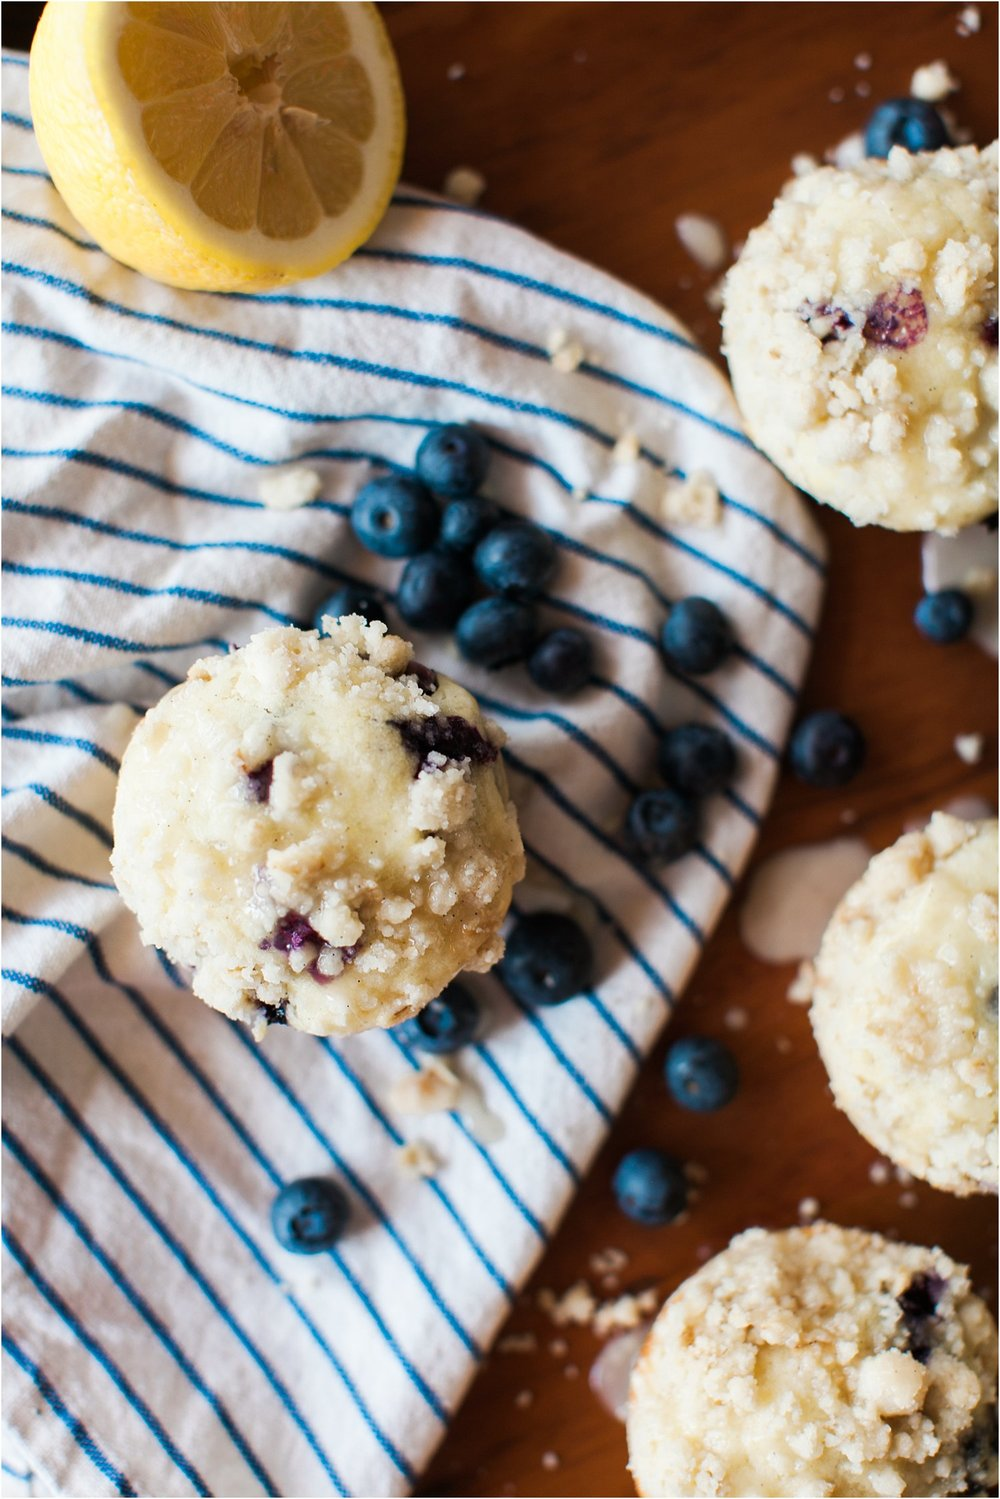 Gluten Free Blueberry Lemon Muffins with Streusel and Lemon Glaze | Feast & Dwell